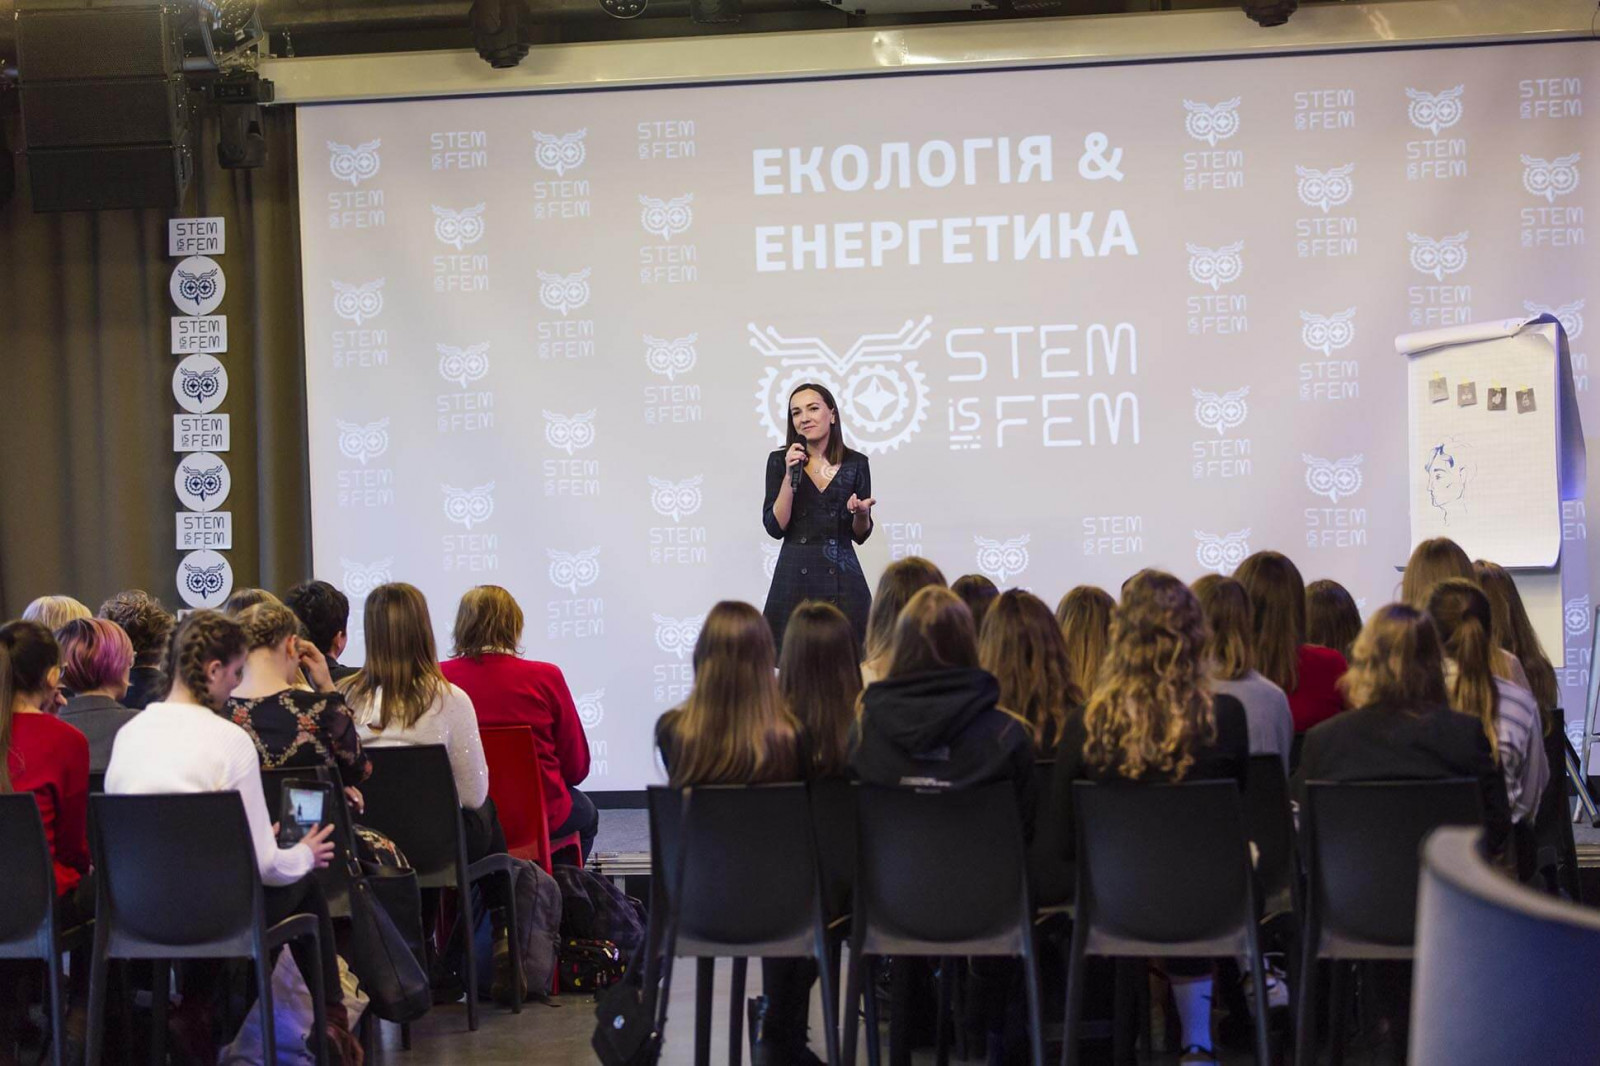 Energy and Environment: The Third Stem is Fem Module was Held in Kyiv